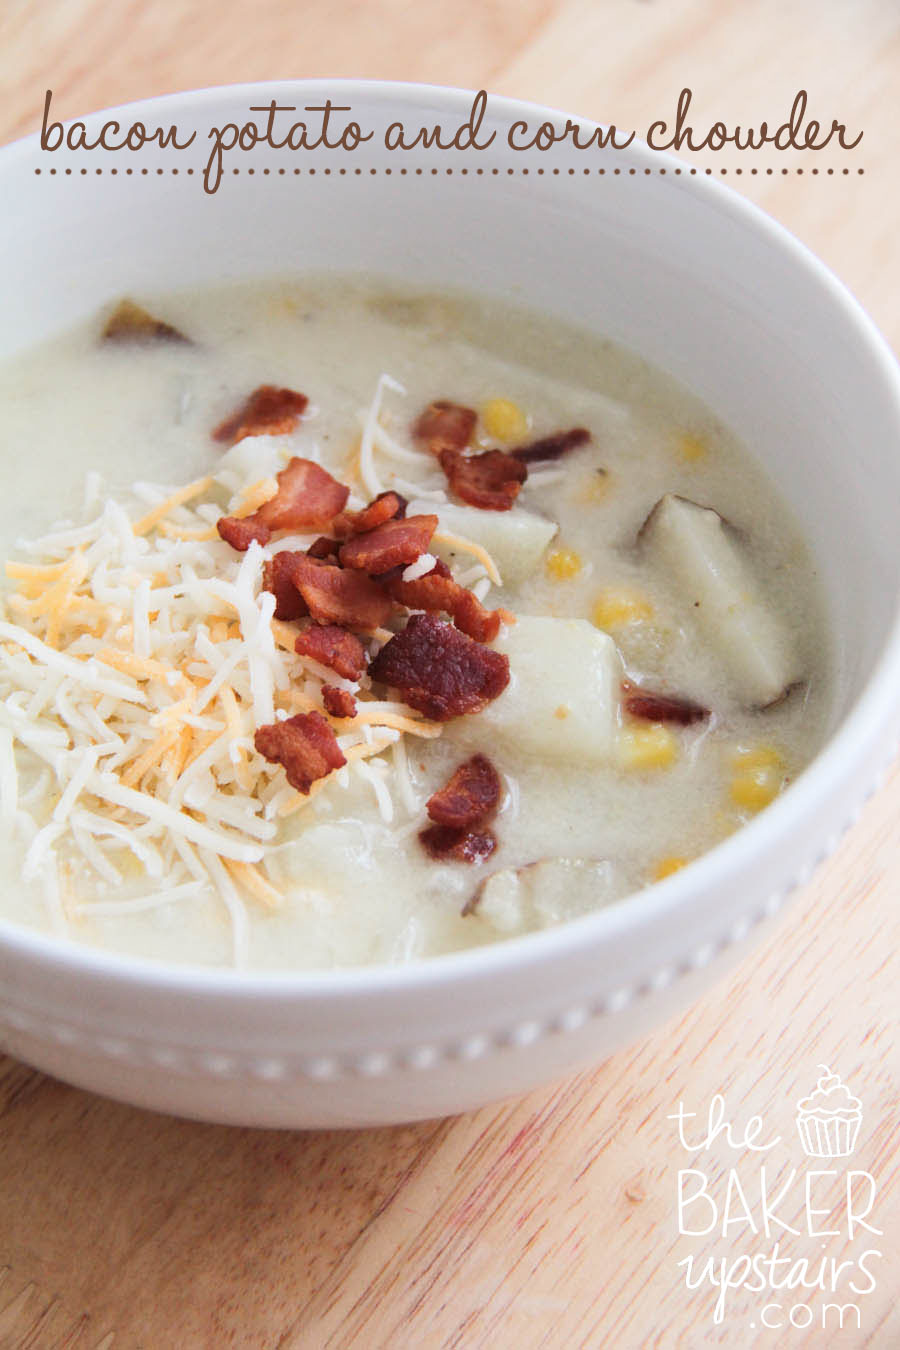 the baker upstairs: bacon potato and corn chowder